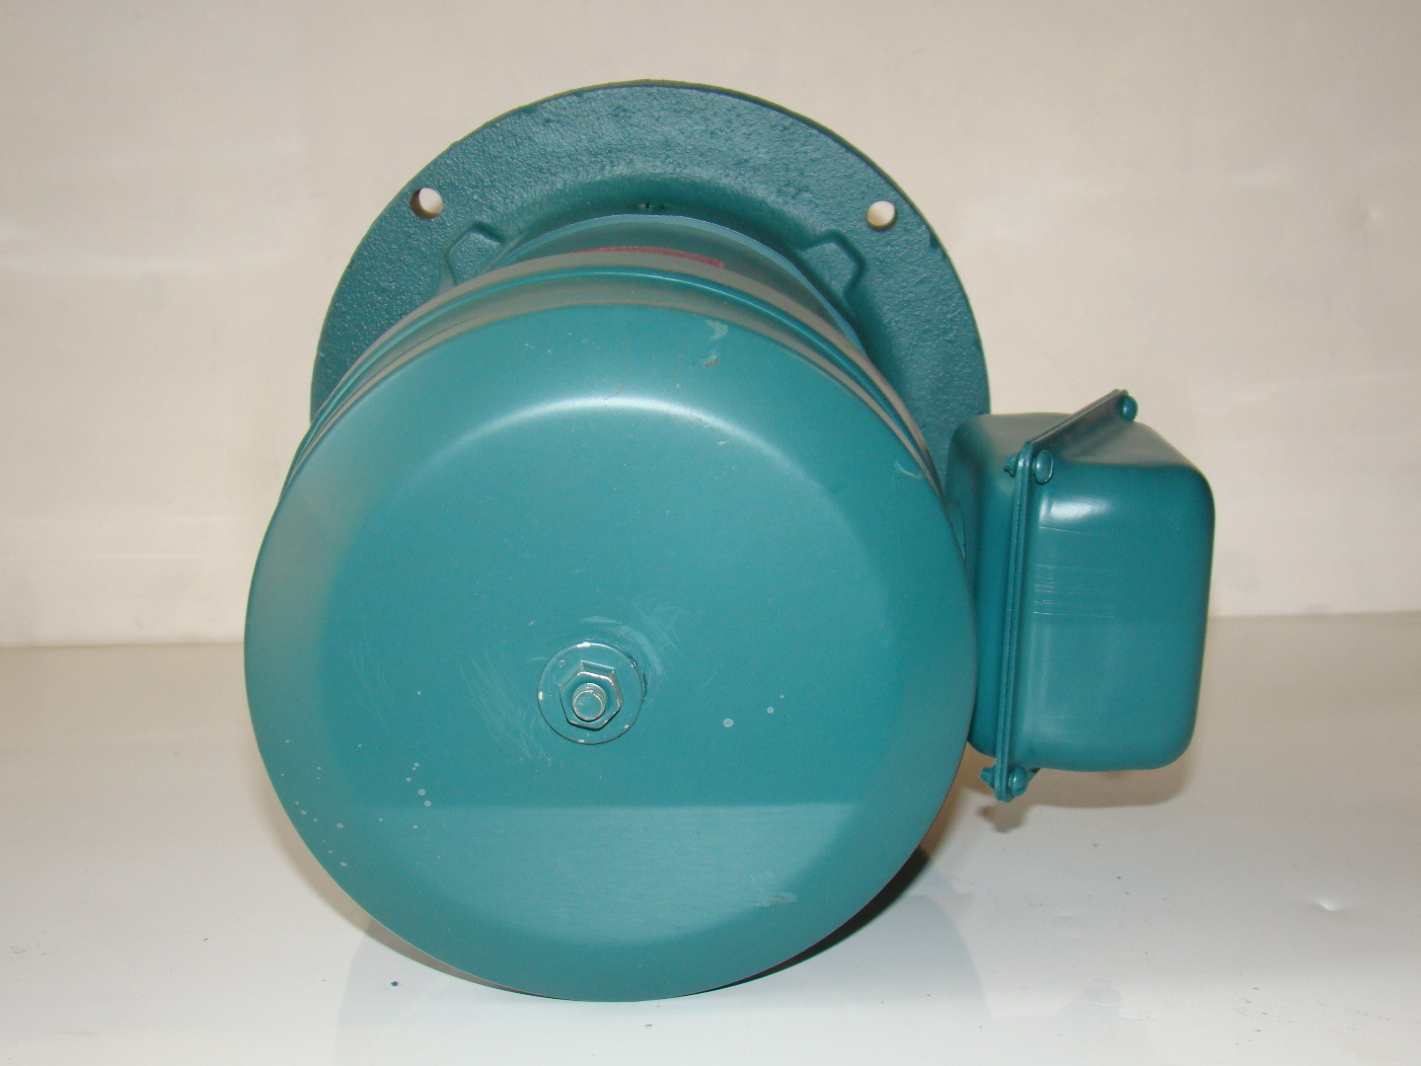 Reliance 1 hp electric motor 230 460v p14h5625m ebay for Reliance electric motor parts